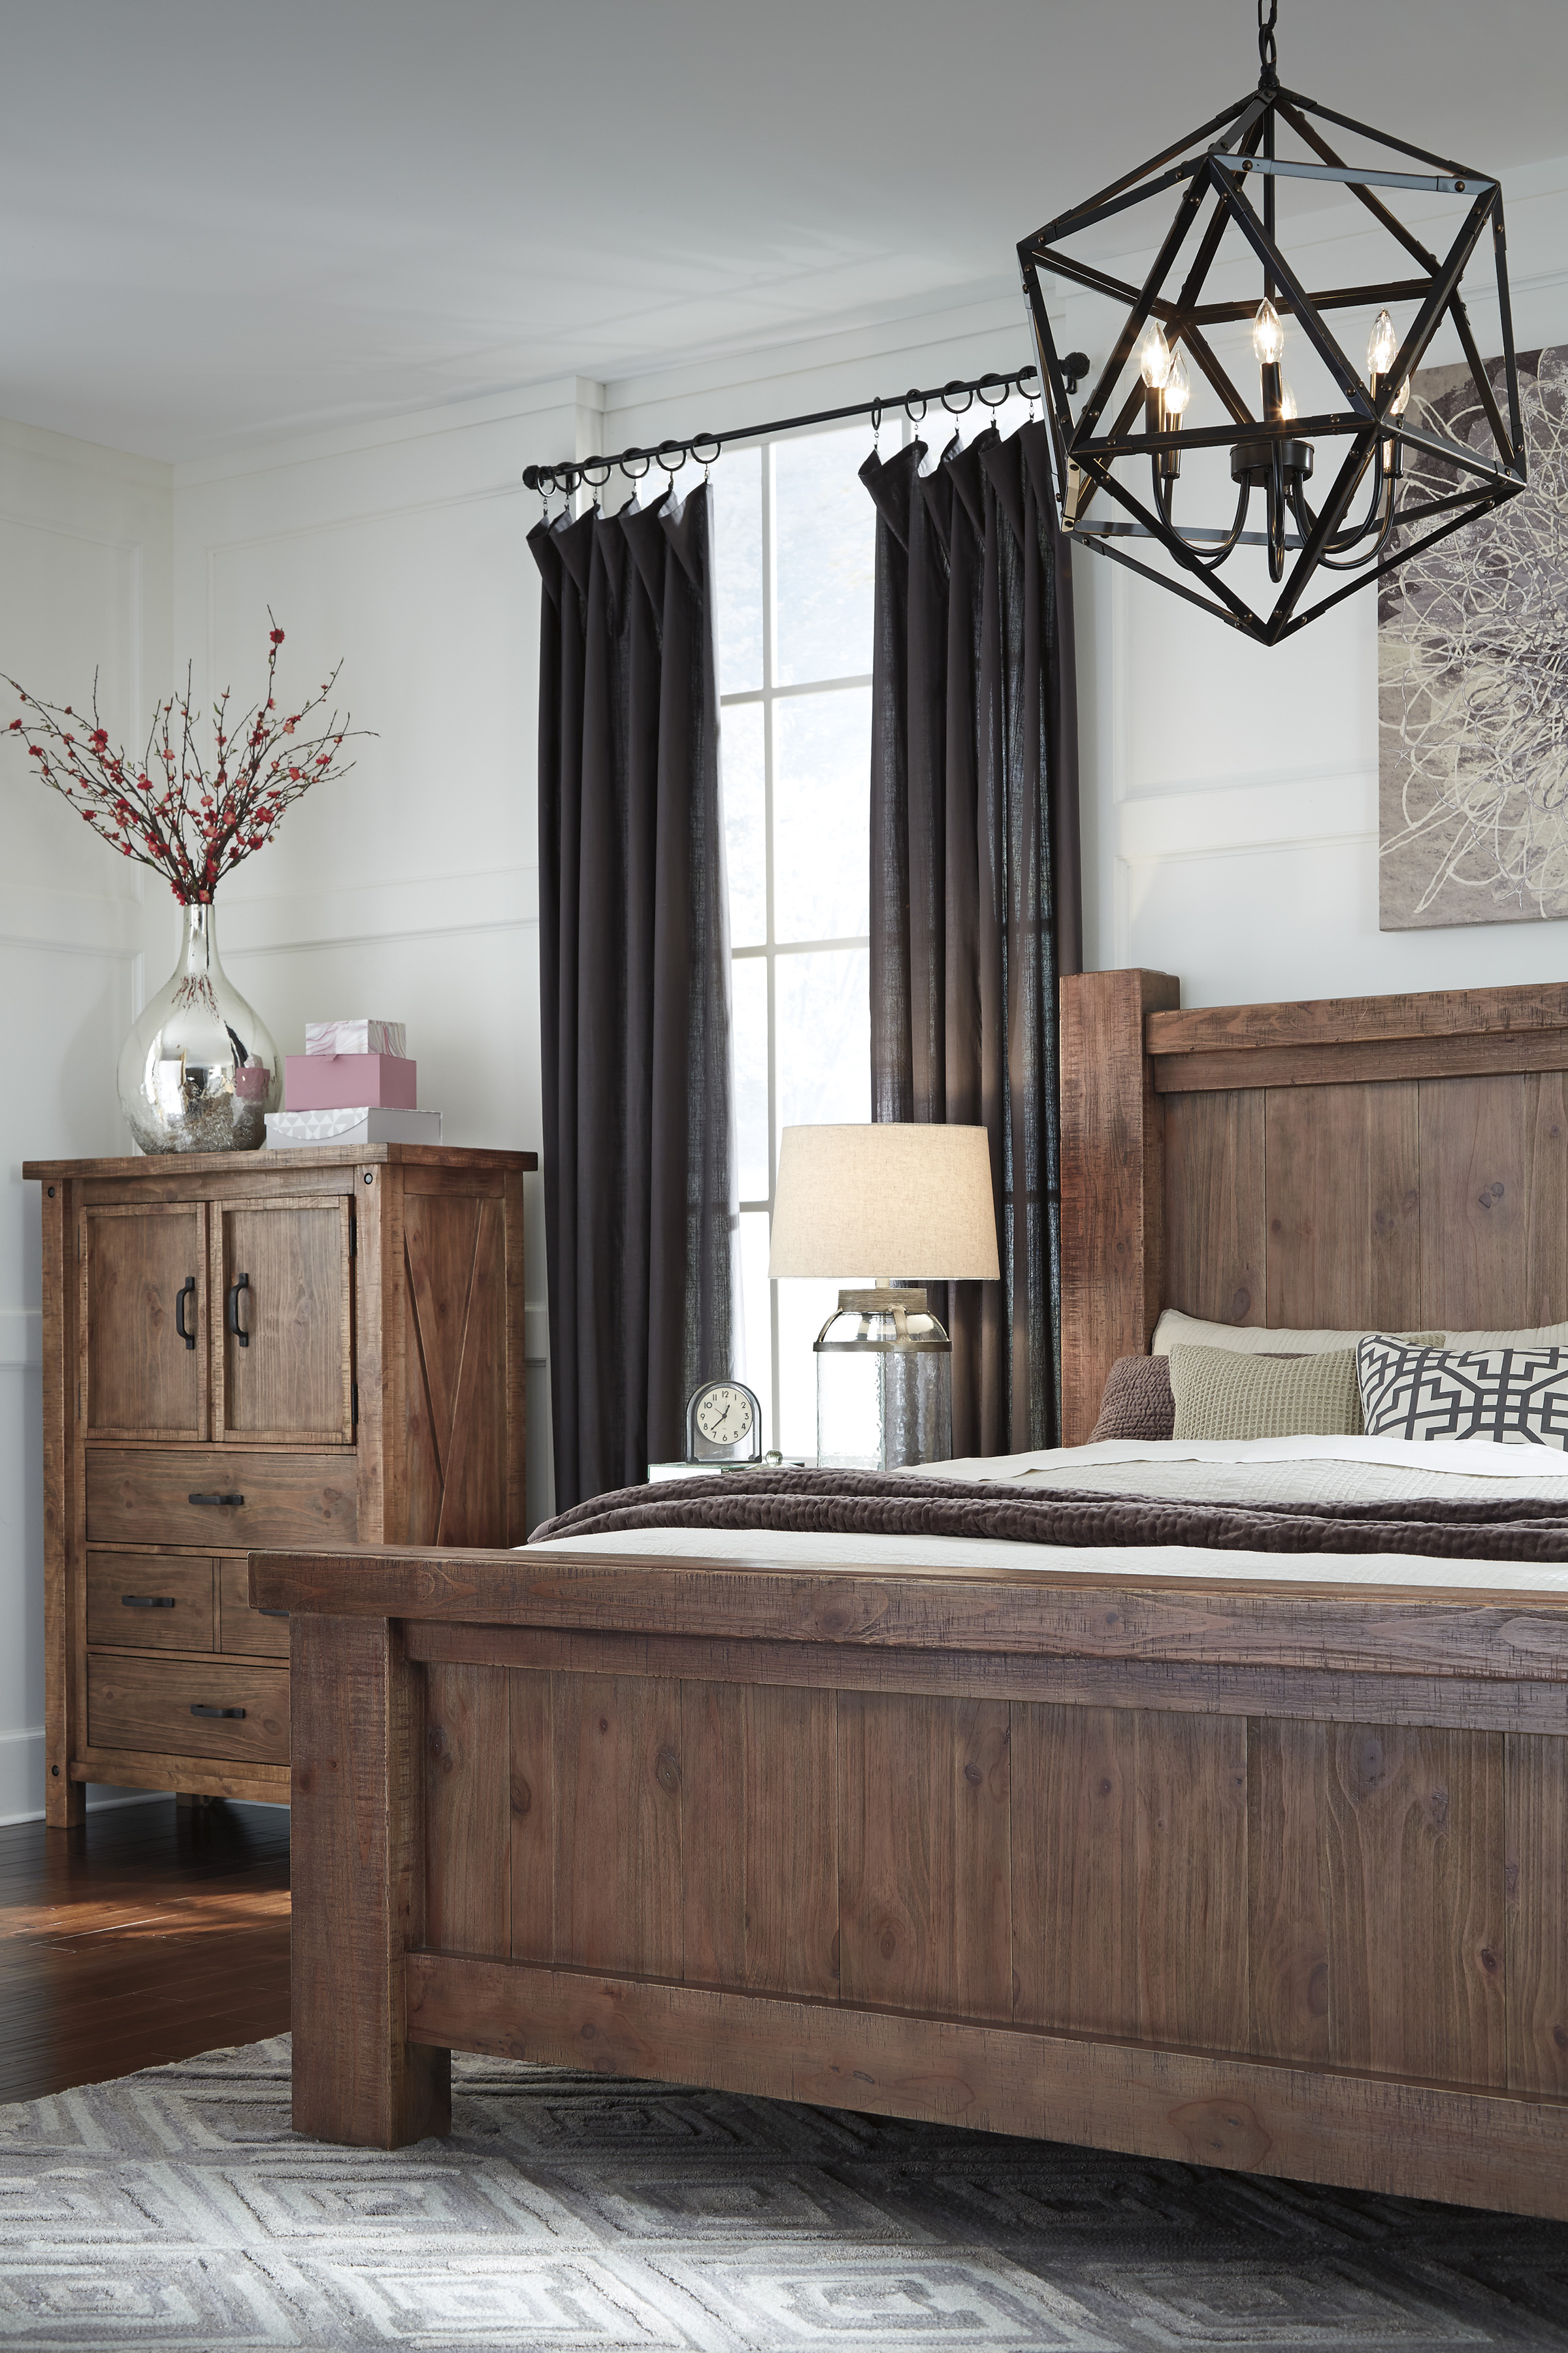 Bedroom Packages: All American Mattress & Furniture